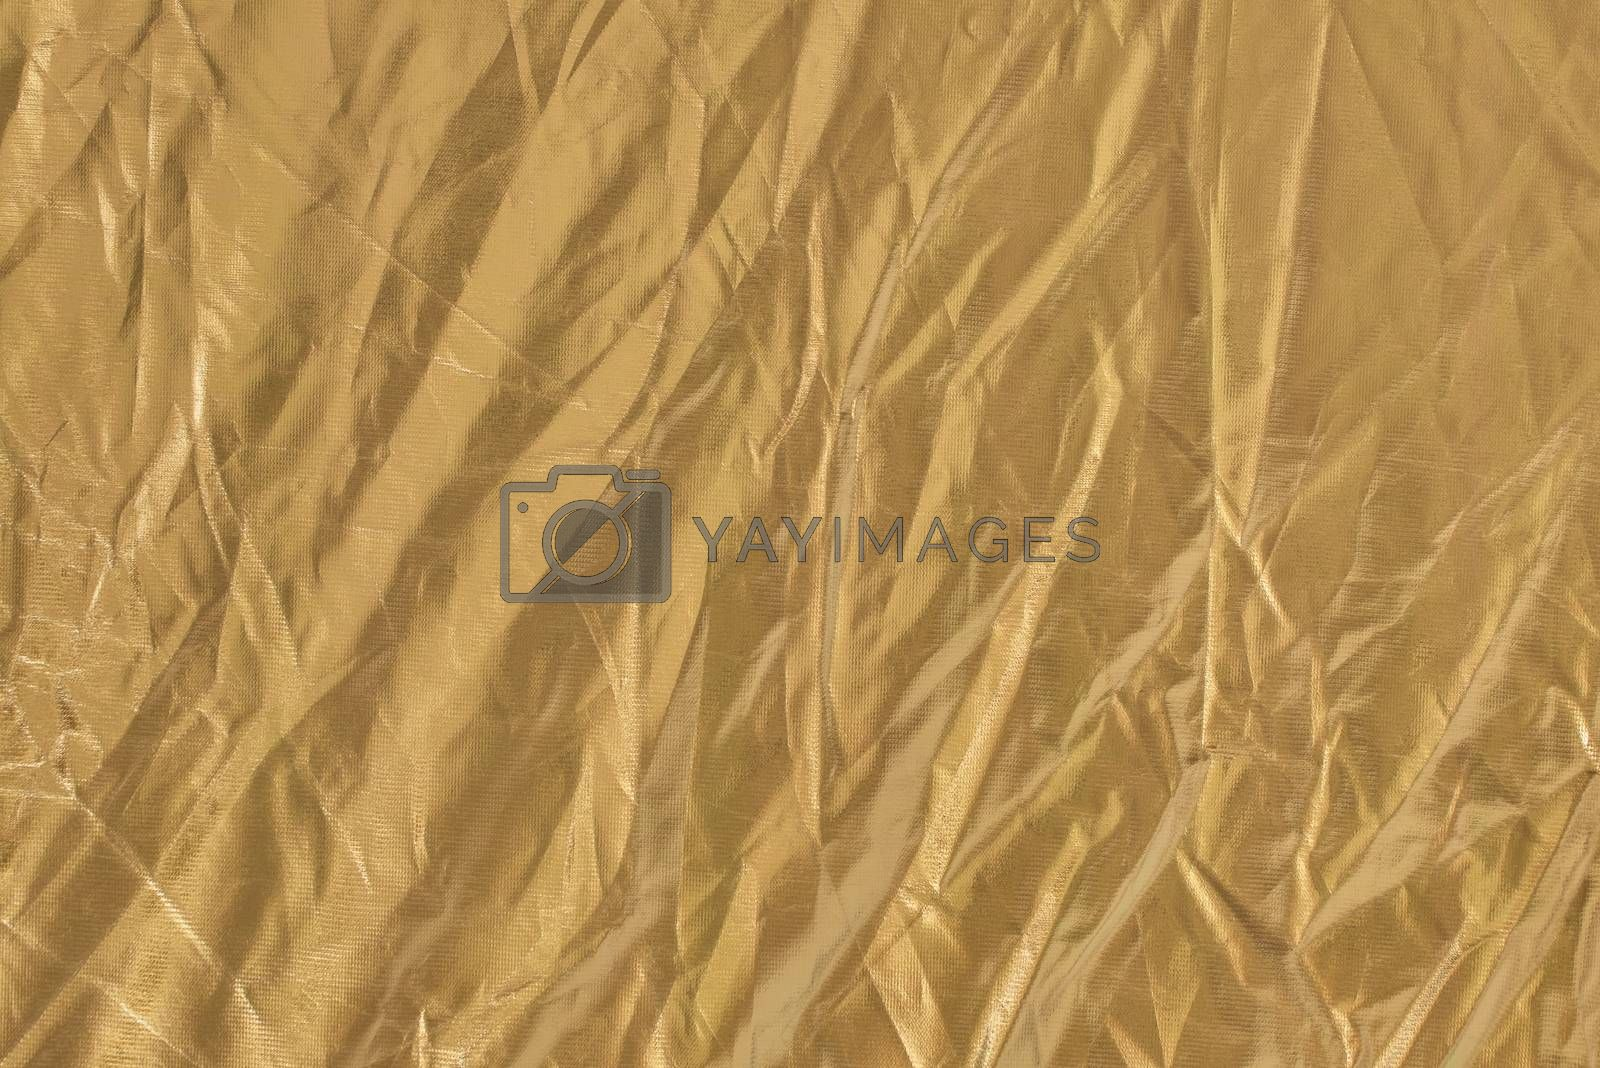 Golden textile background. Fabric of yellow color.